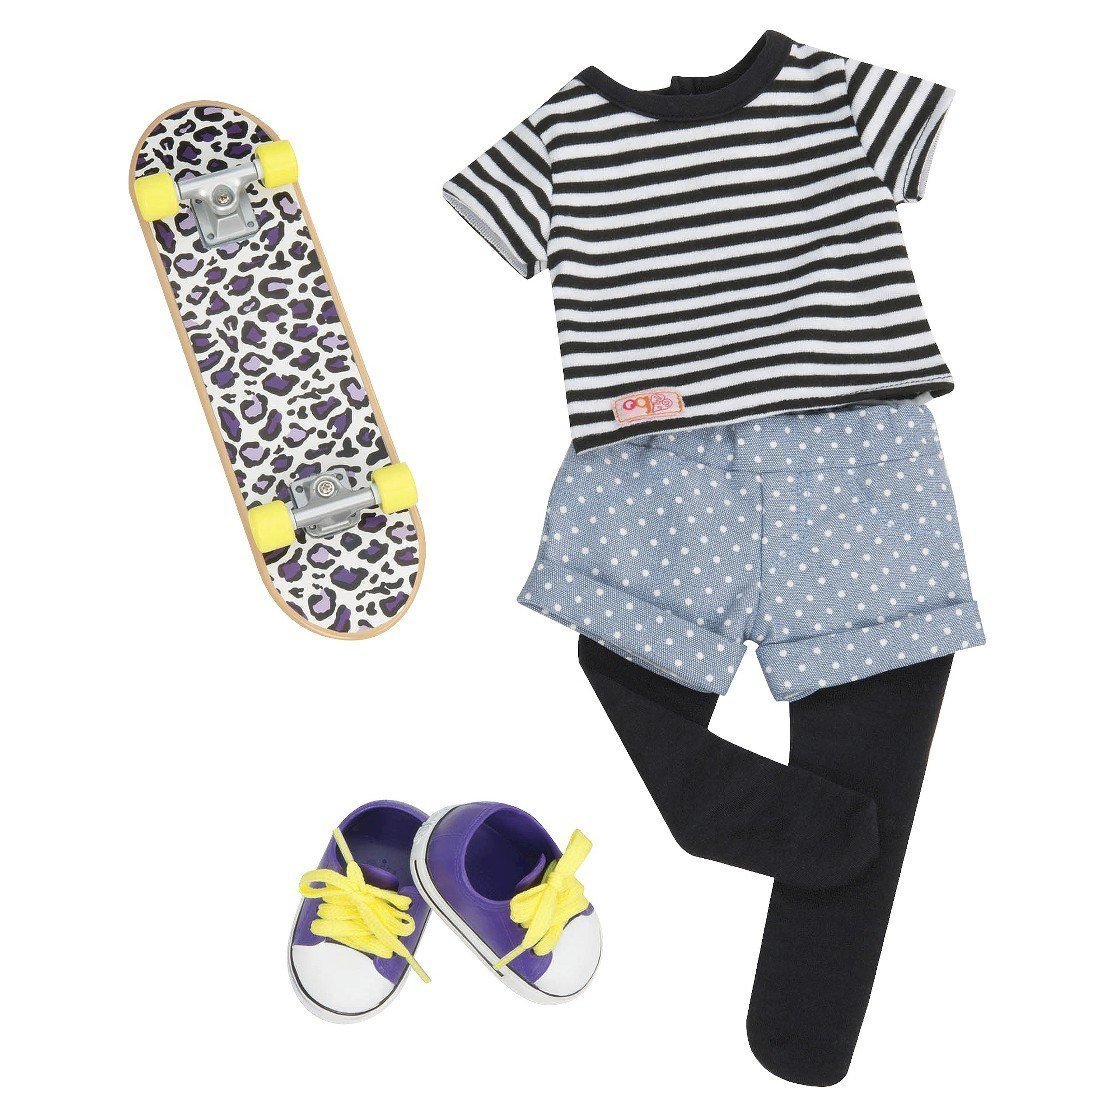 Our Generation: Regular Outfit - Skater Outfit image